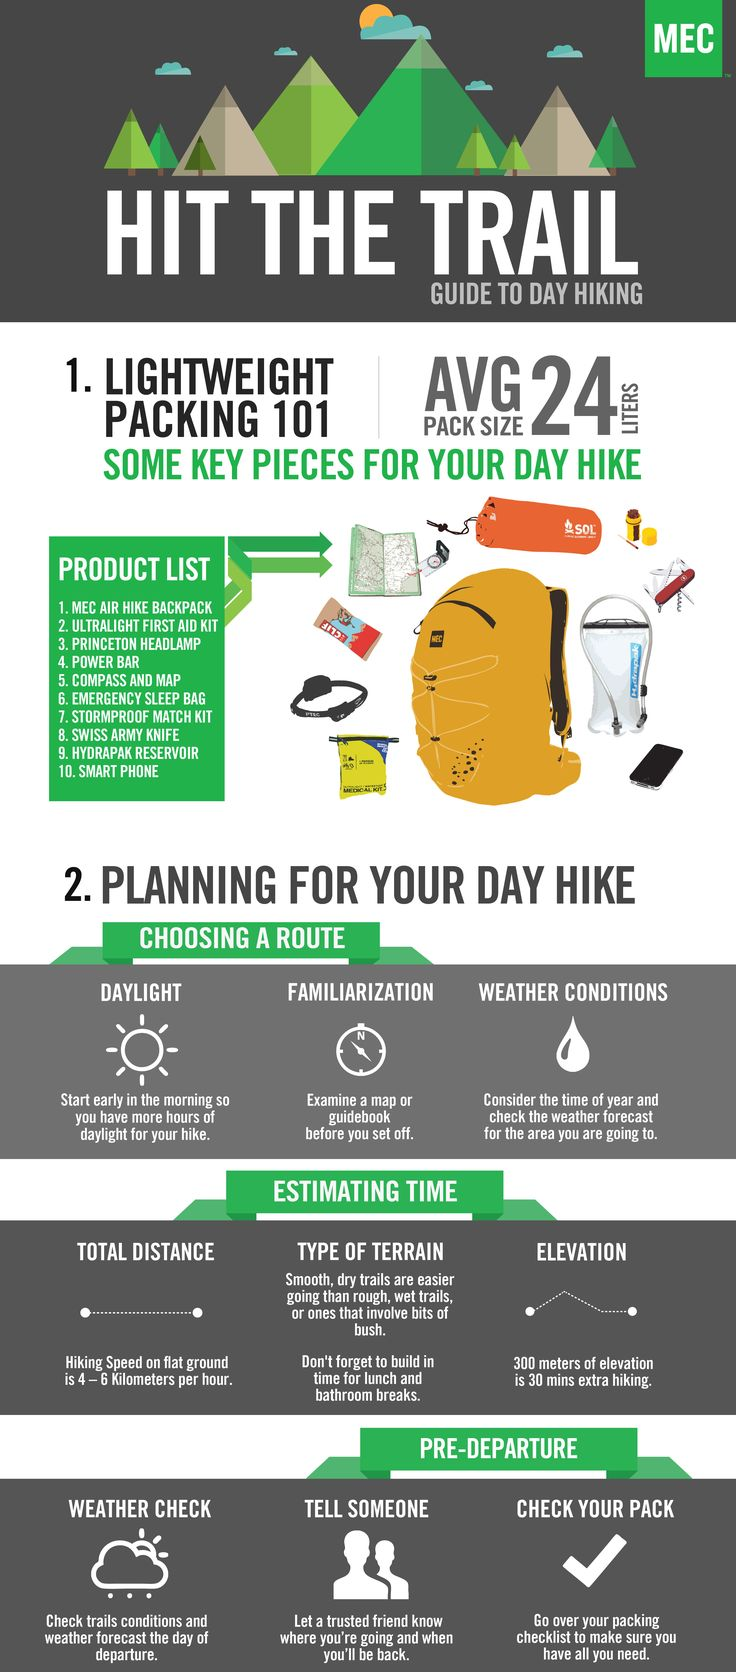 Hiking tips. These would work well for AZ too. Just remember to follow the guidelines for recommended water here (frequently at least a liter or more)! You can become dehydrated need more water here.